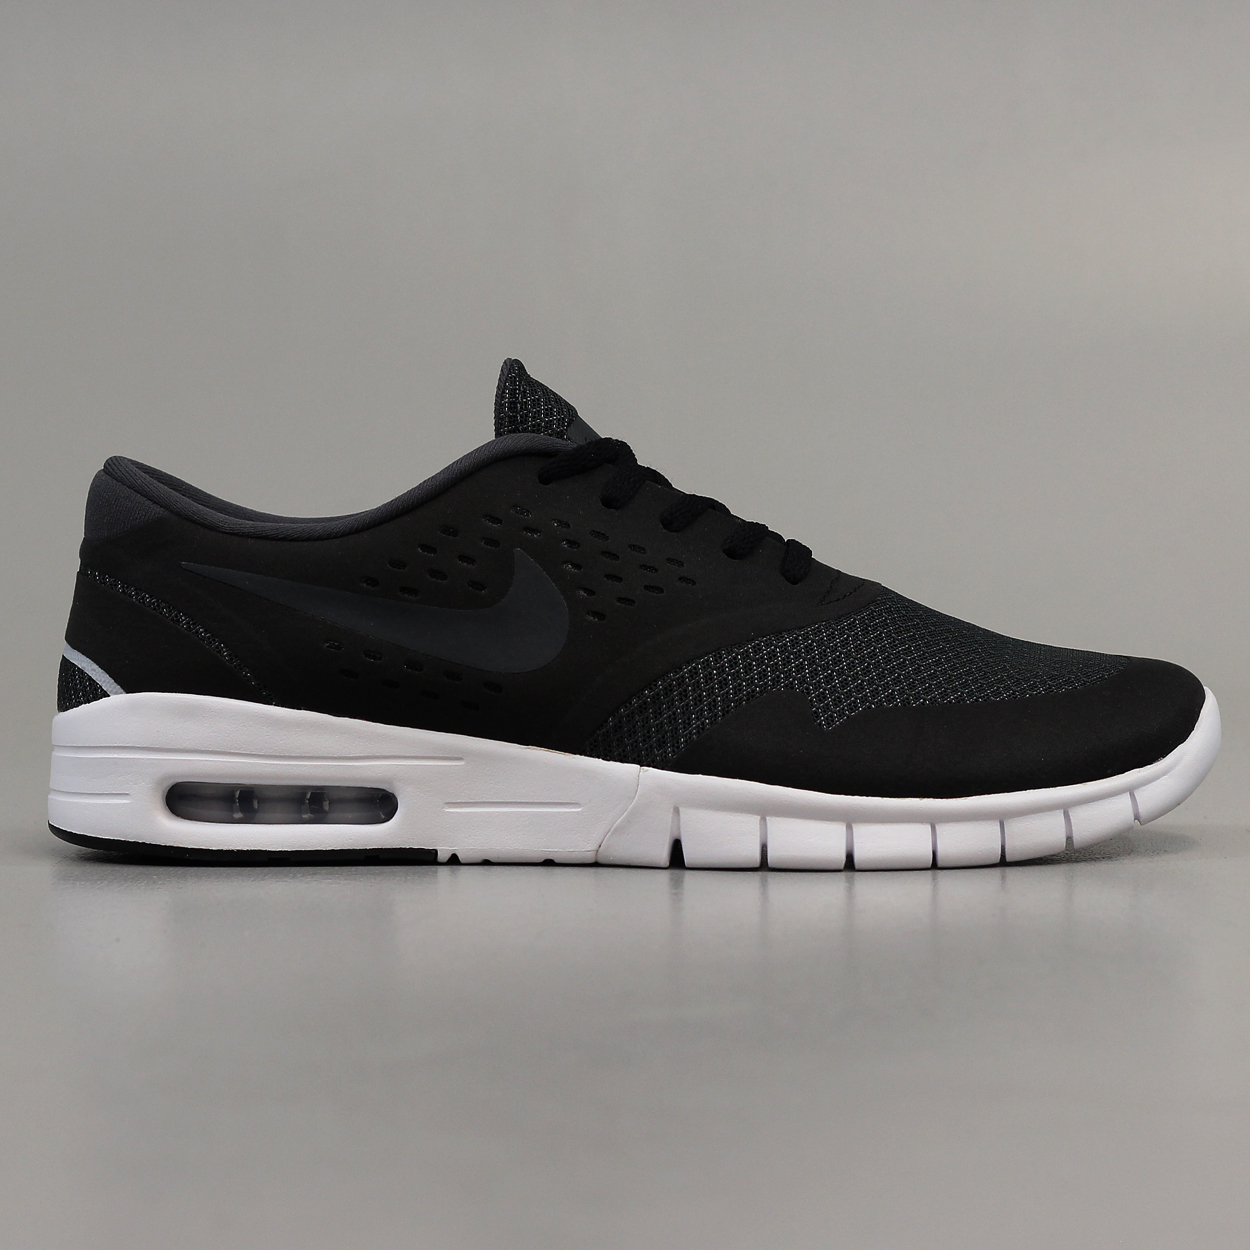 reputable site 8f9d3 c0f03 Nike SB Eric Koston 2 Max Mens Shoes Black Anthracite Wolf Grey £56.70